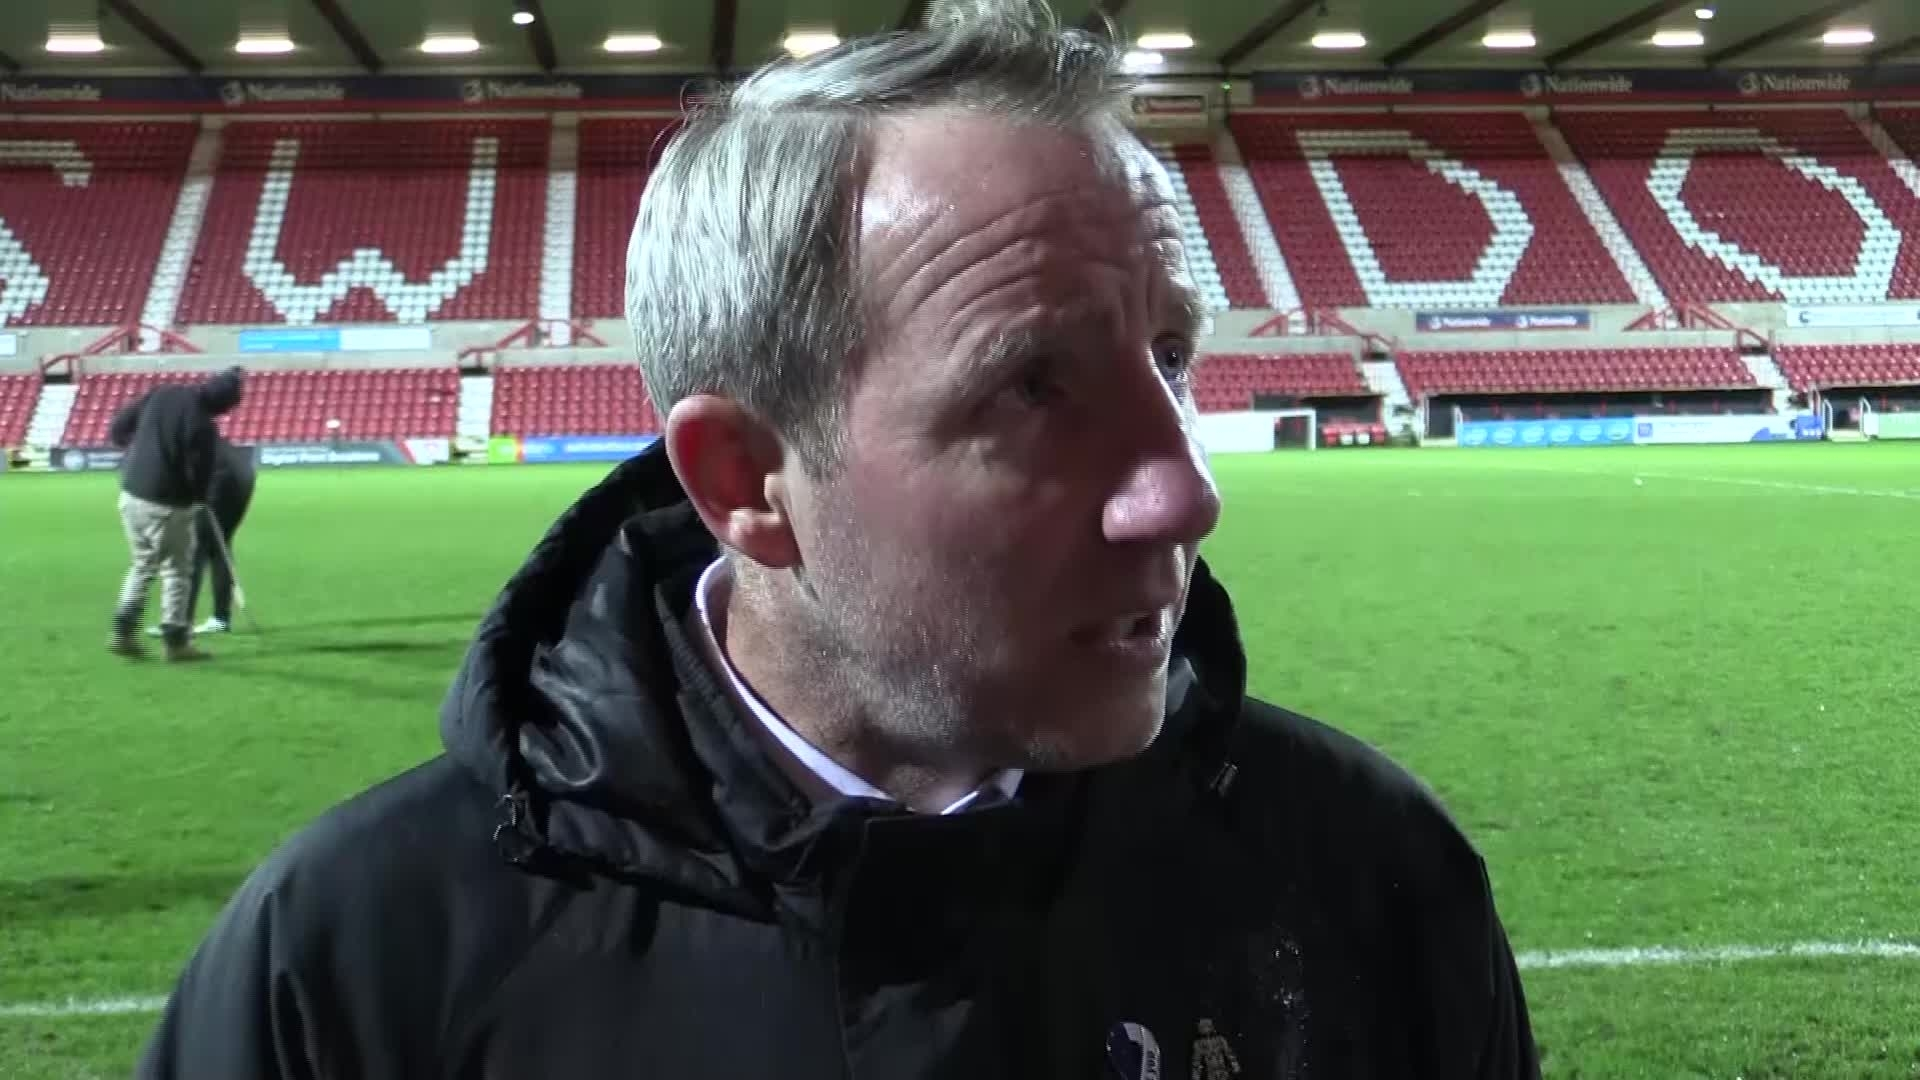 POST-MATCH | Lee Bowyer's post-Swindon Town press conference (December 2020)